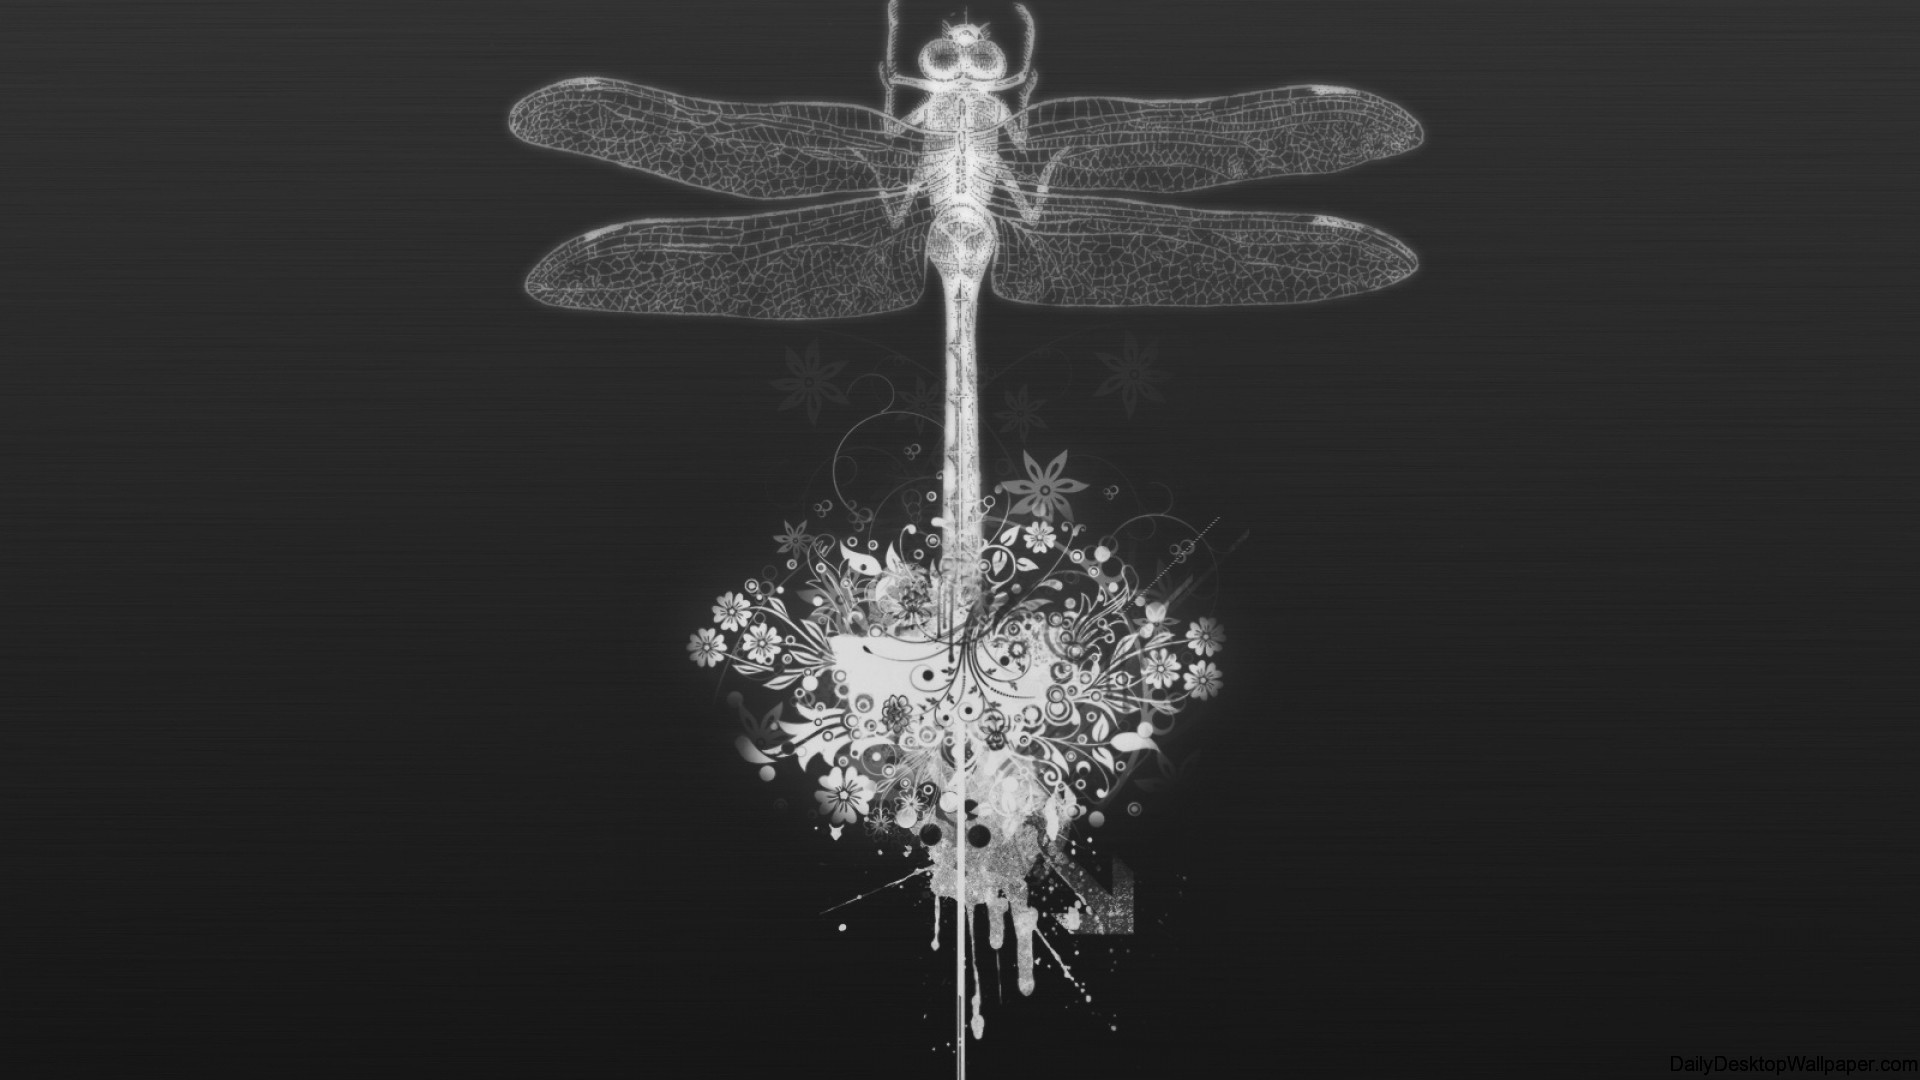 dragonfly wallpaper black and white